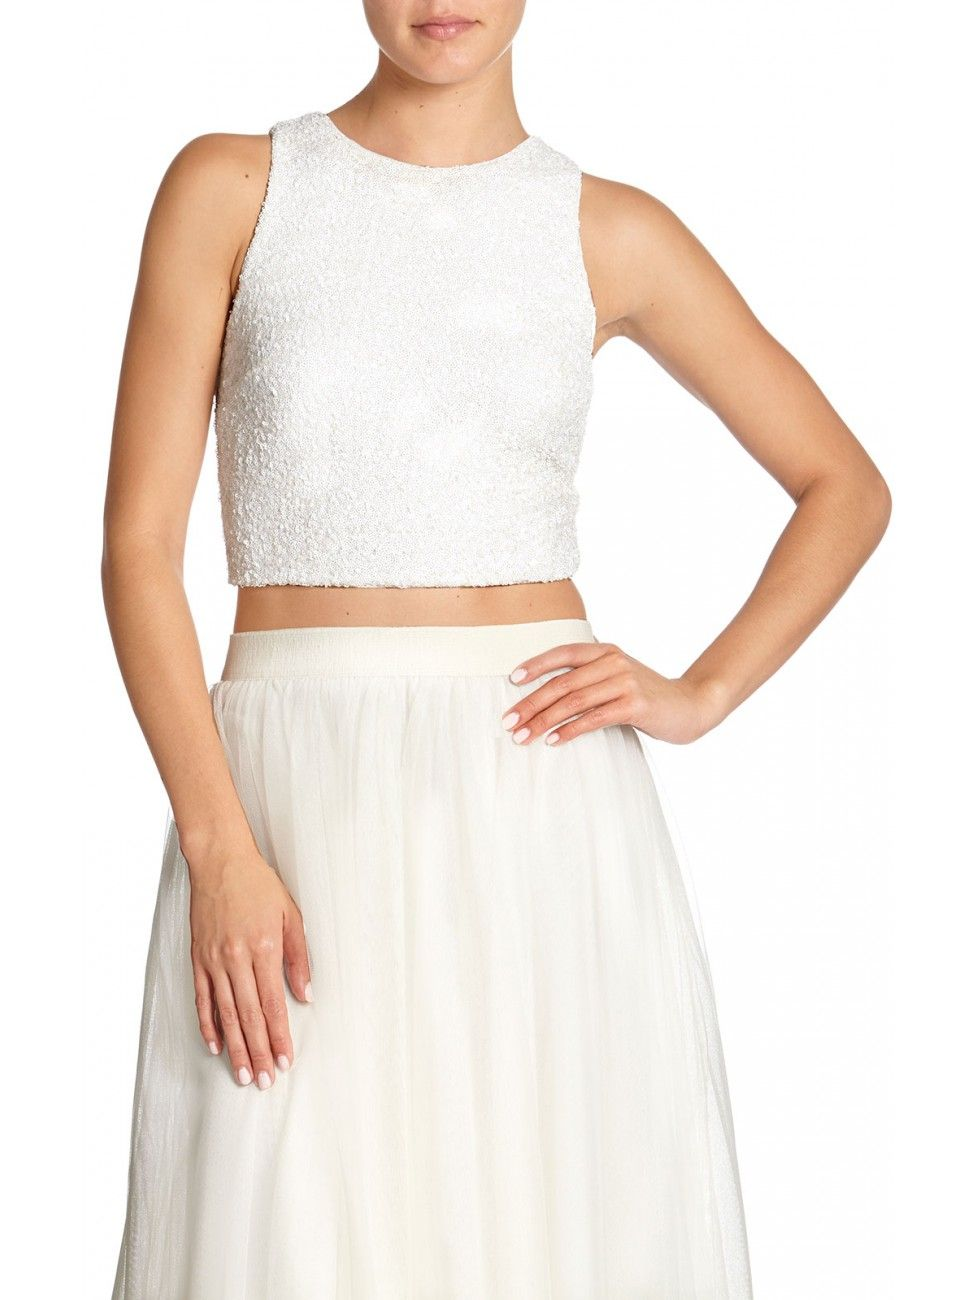 Sequined crop top - Bailey44 Holiday Collection